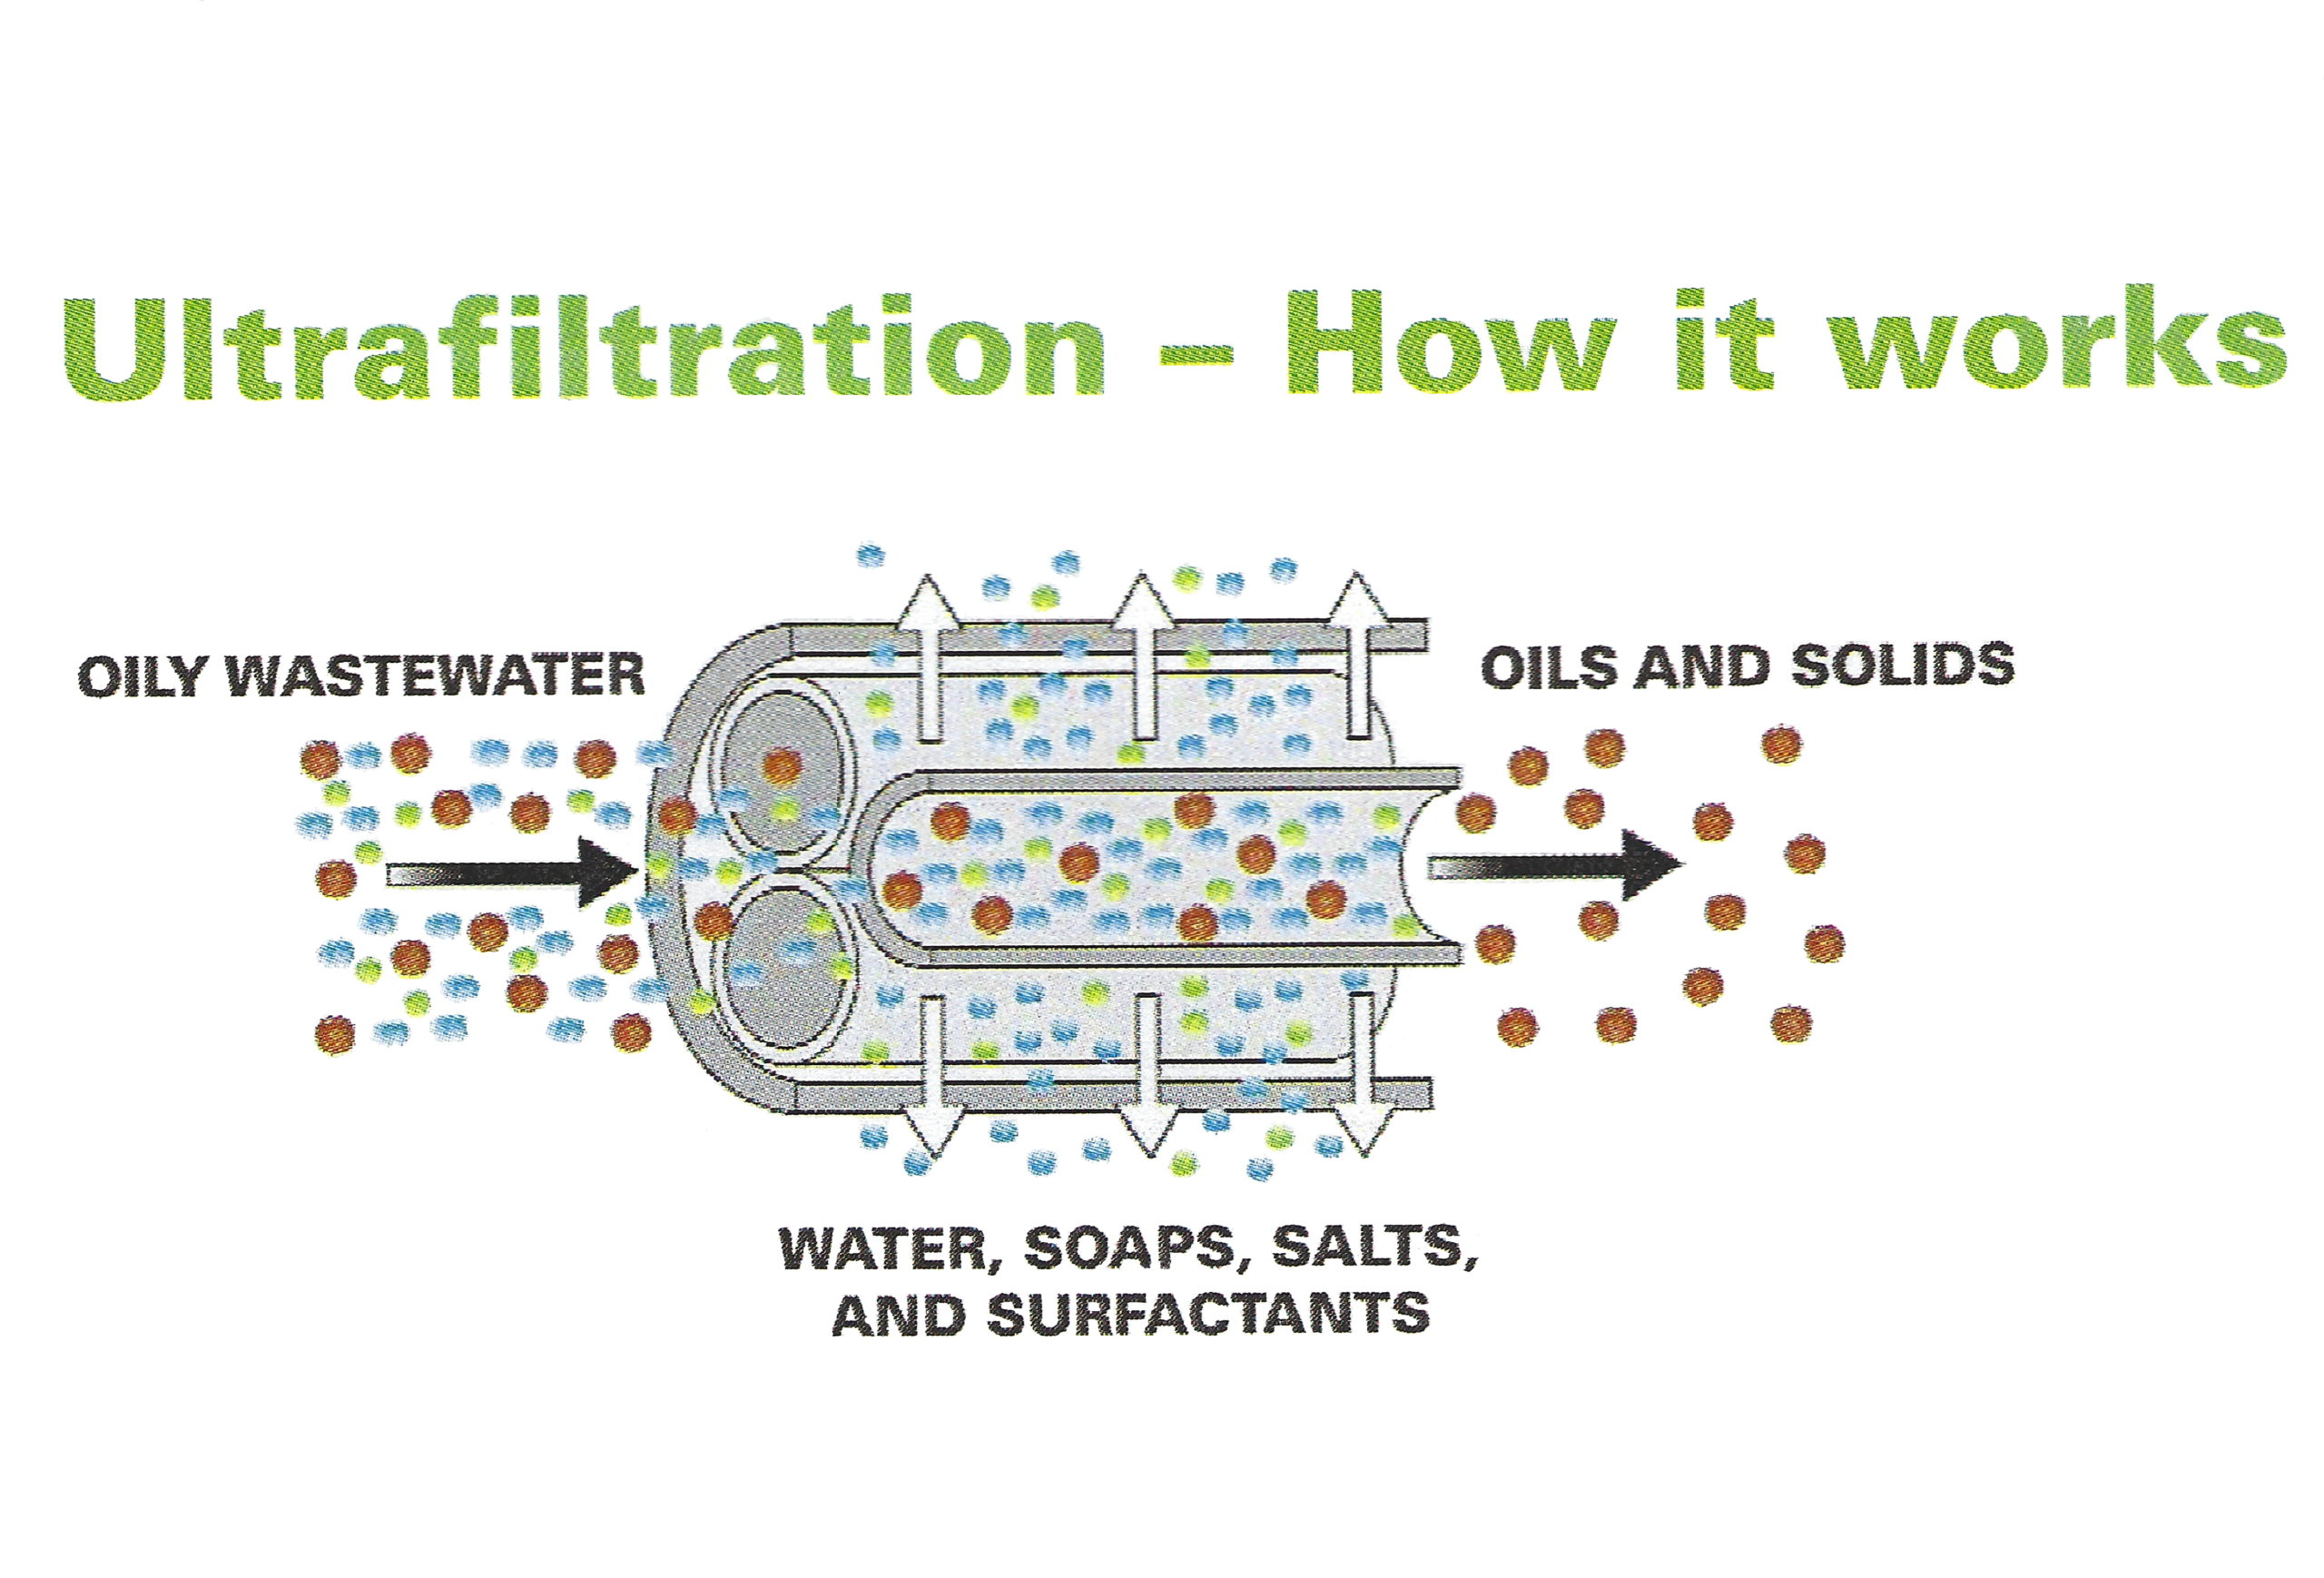 UltraFiltration How it works